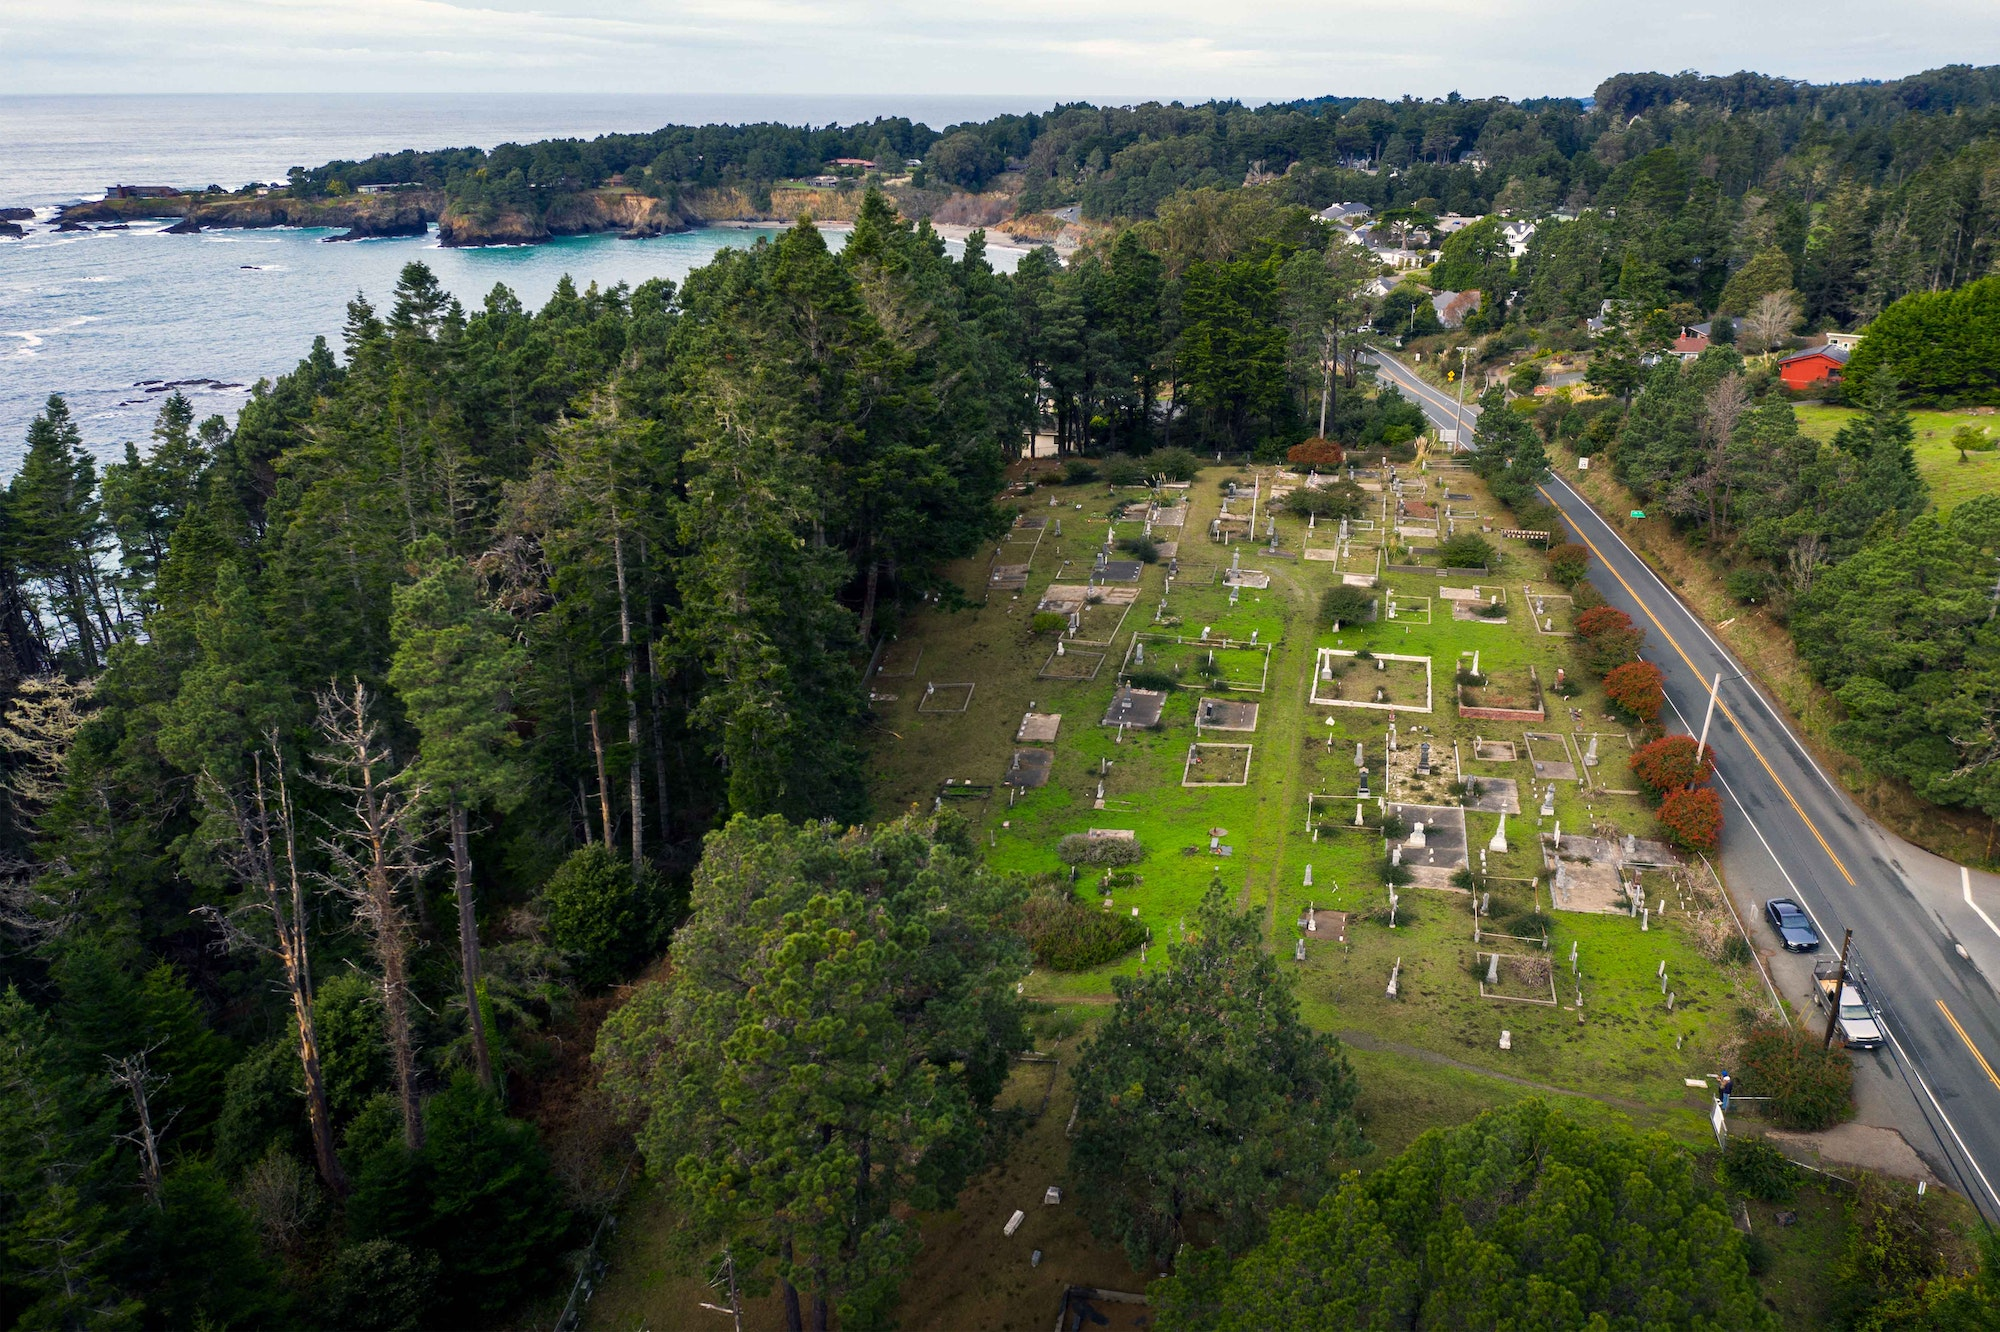 This is an aerial photograph of the Little River Cemetery with a view of the Pacific Ocean in the background and California Route 1 in the foreground.